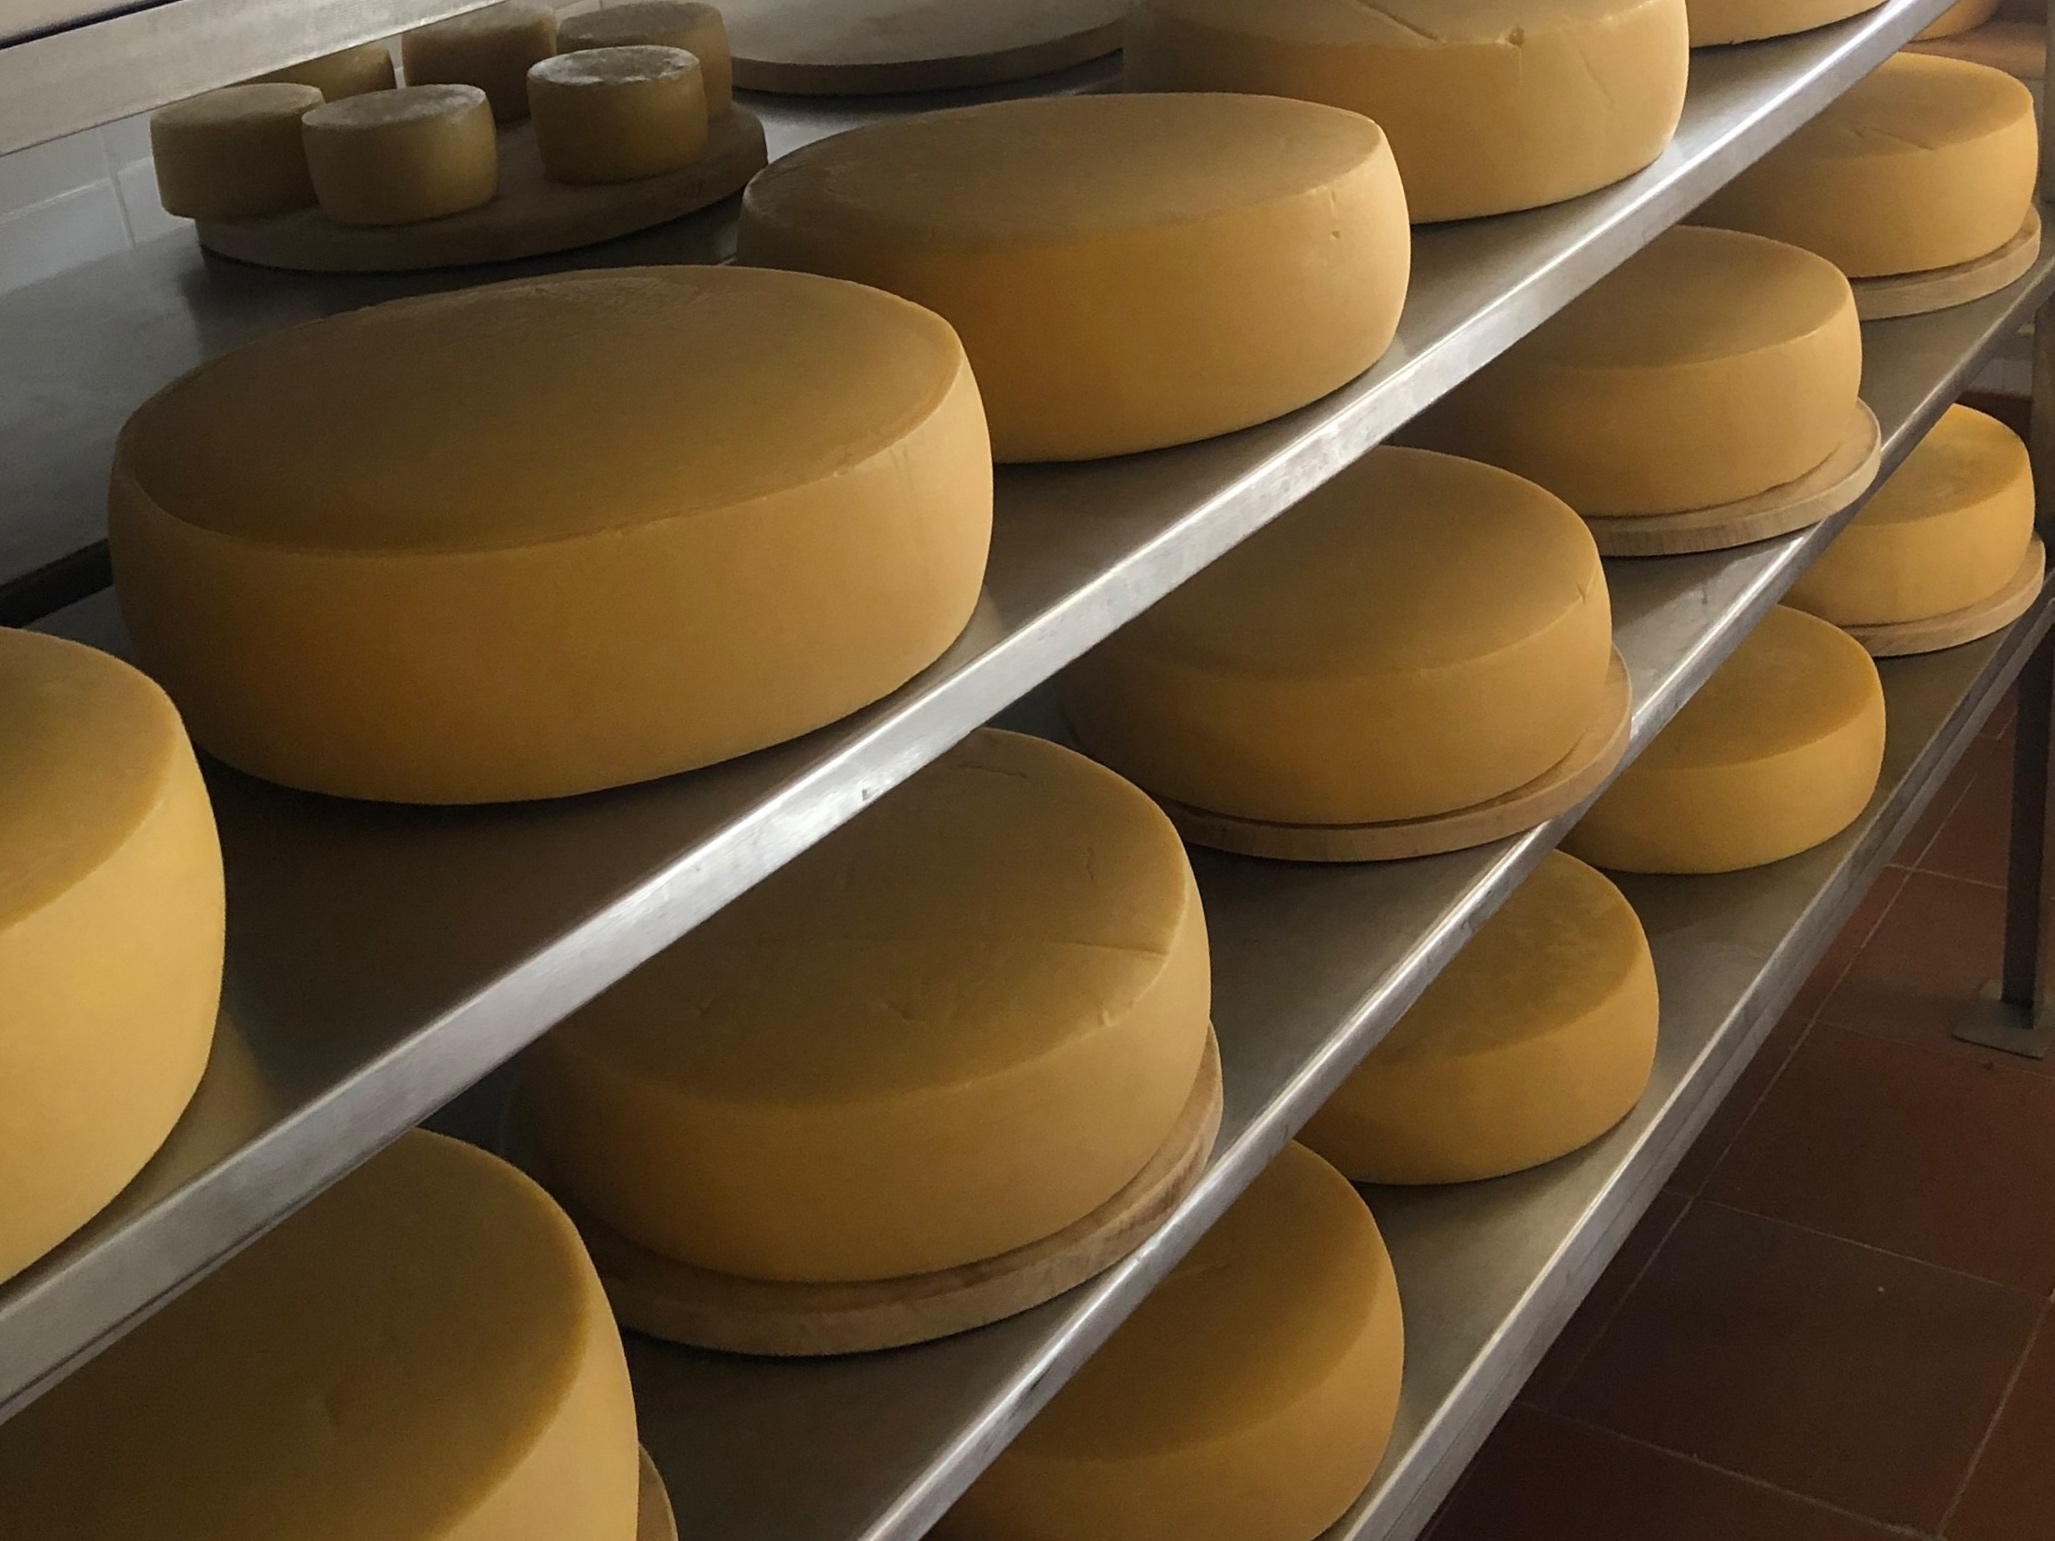 Beyond Latin America - We work with cheese companies in Europe and the US to access the growing market in Latin America and to create strategies to serve Spanish-speaking consumers around the world.